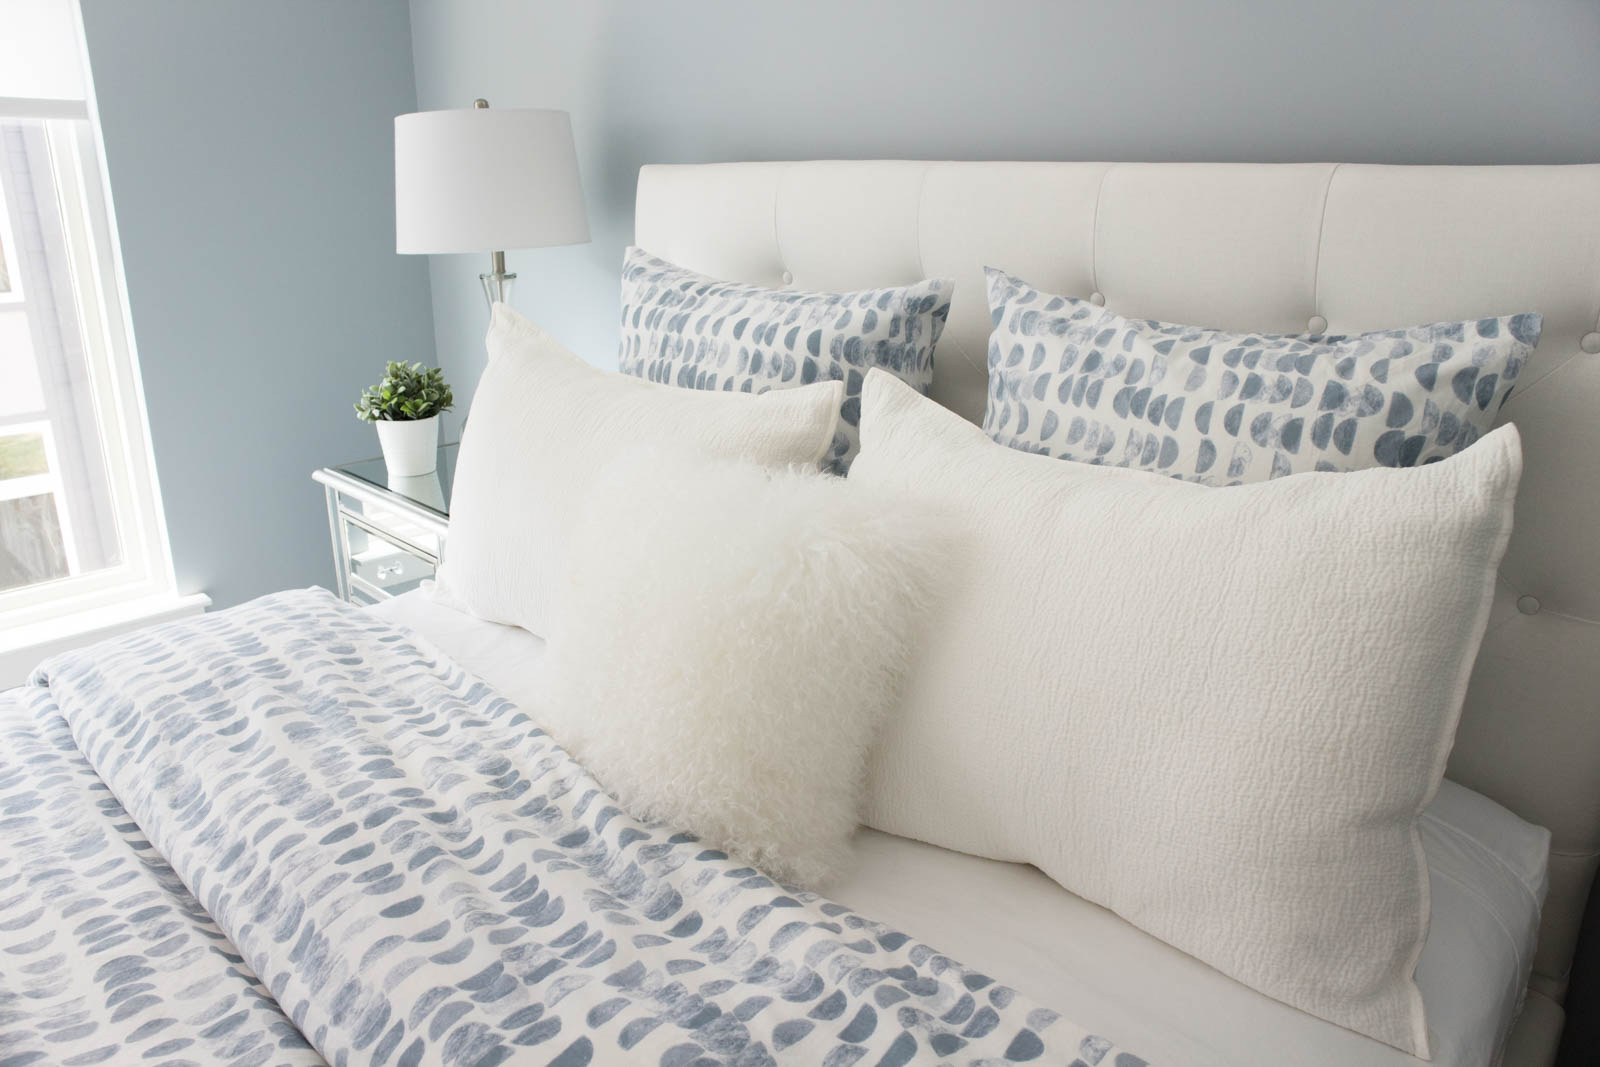 Pottery Barn Lorraine bed, guest bedroom home tour